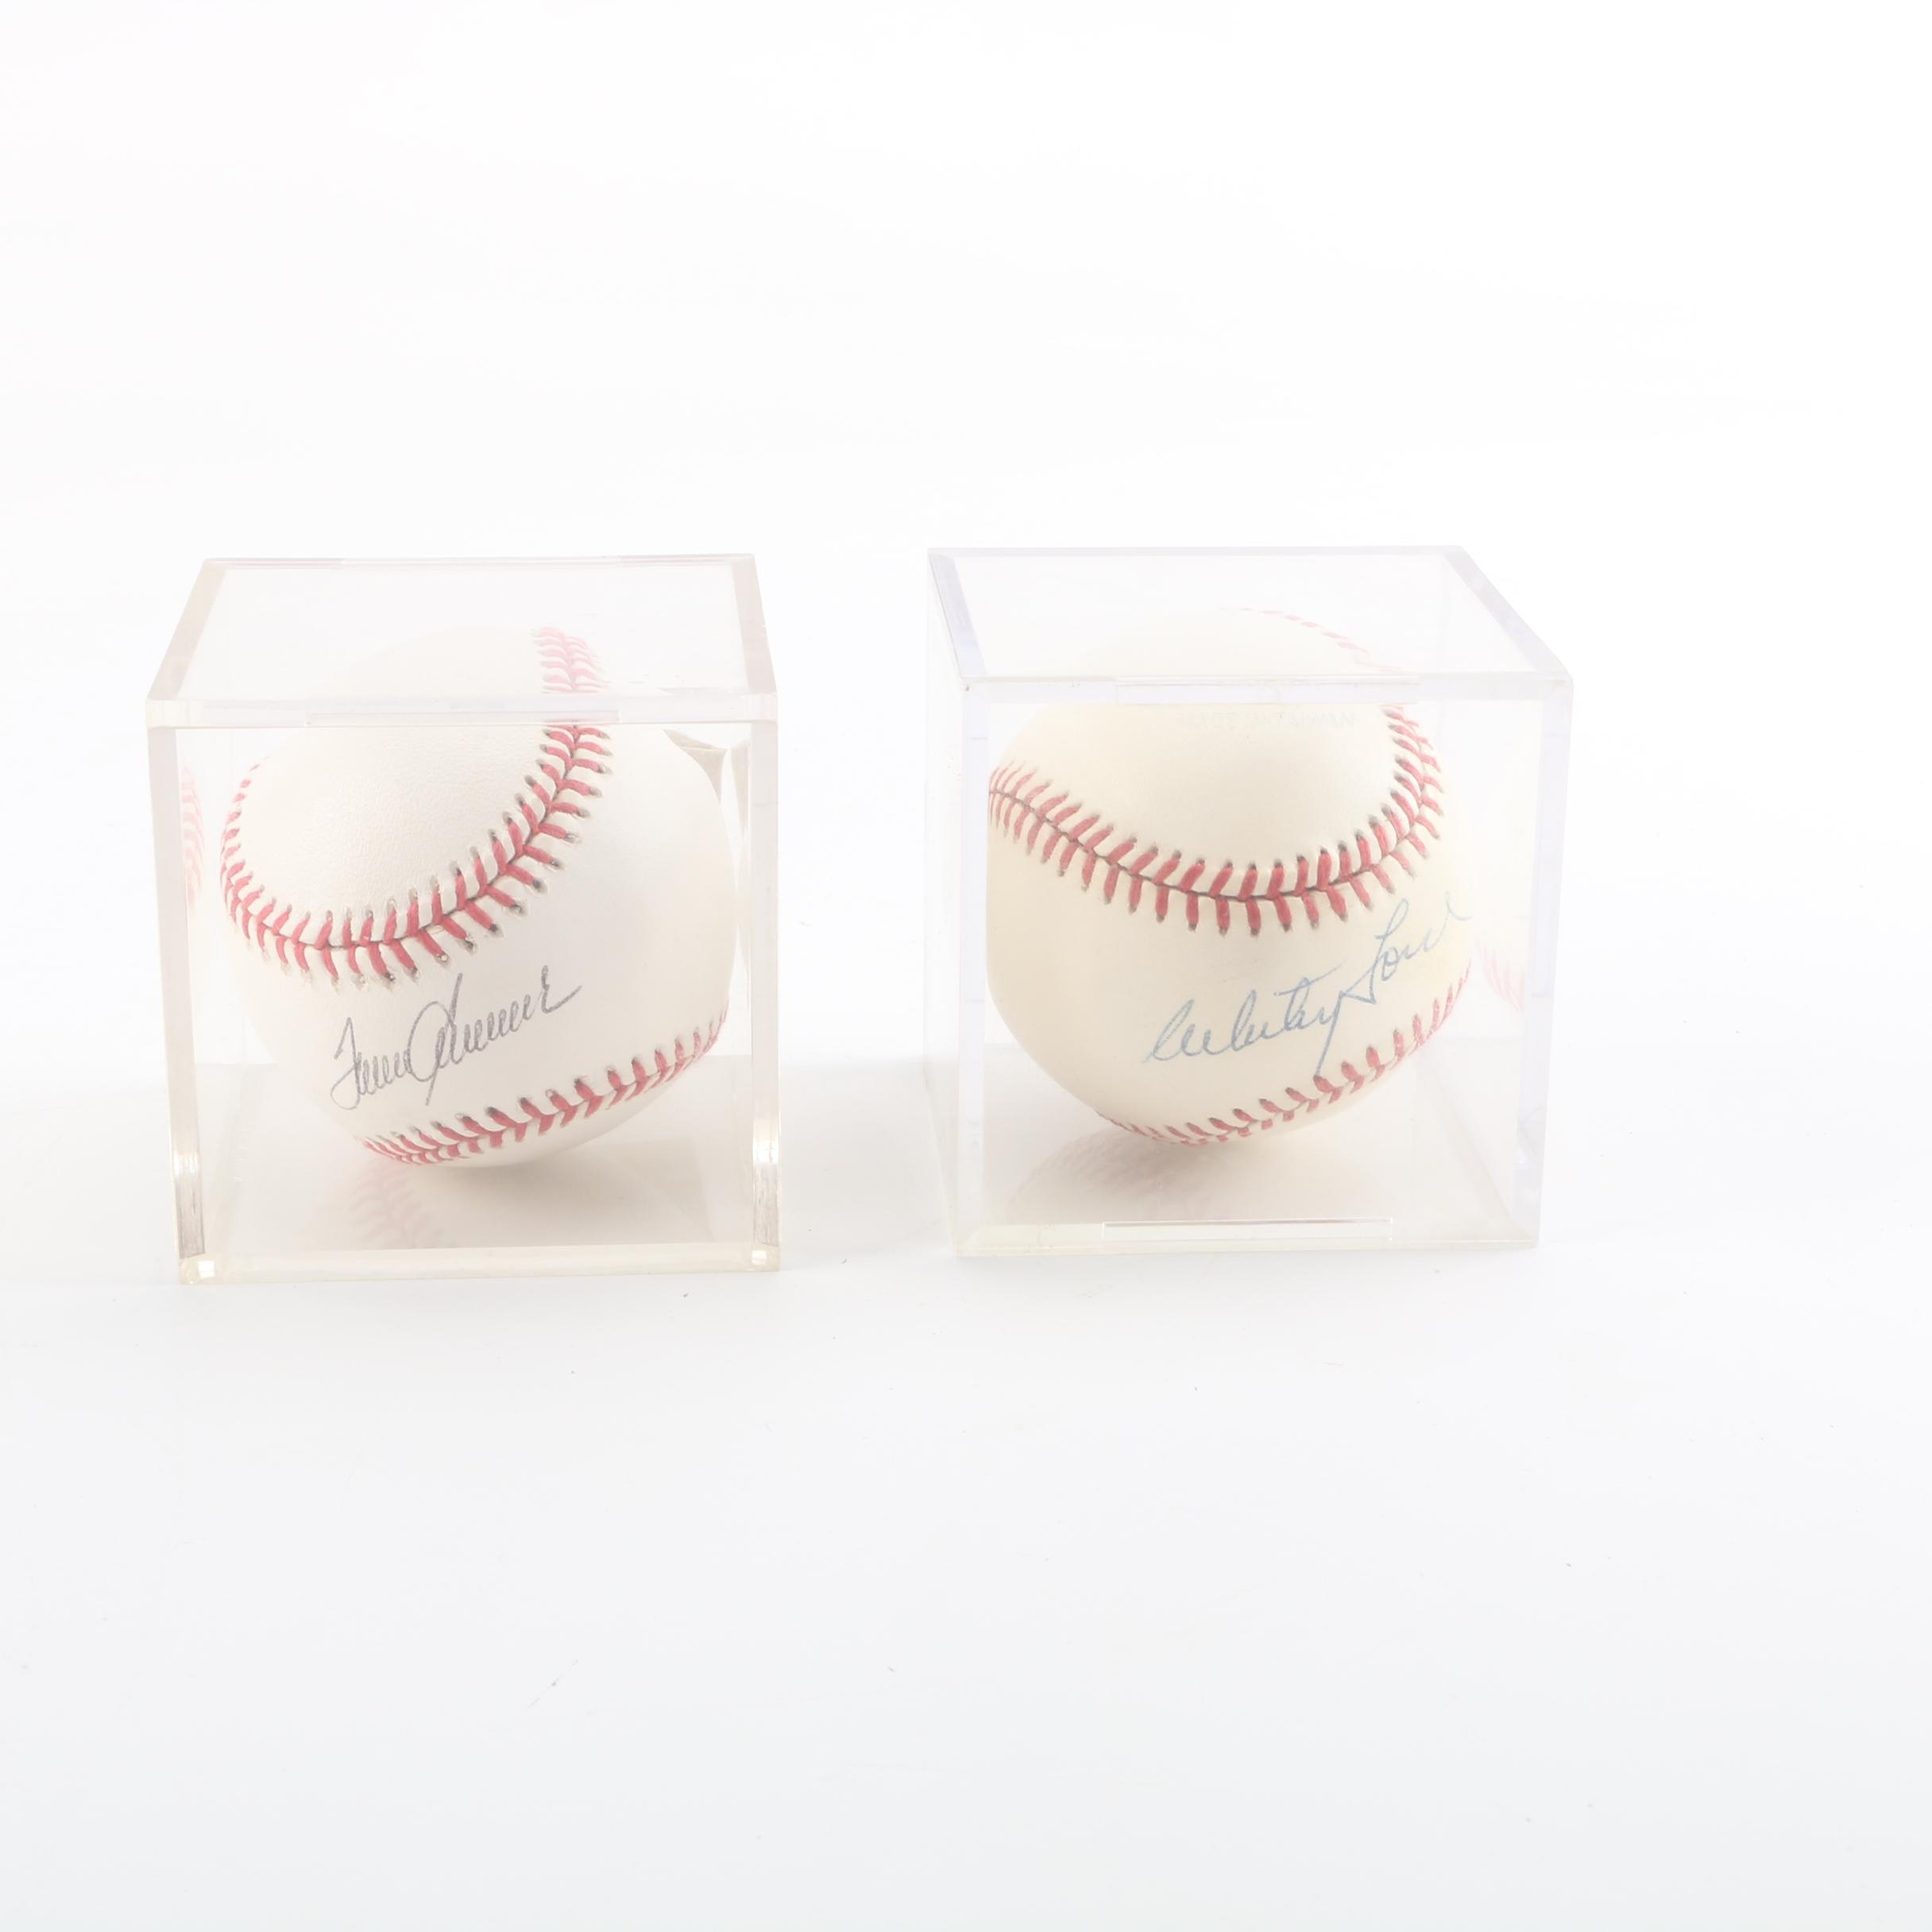 Tom Seaver and Whitey Ford Autographed Baseballs